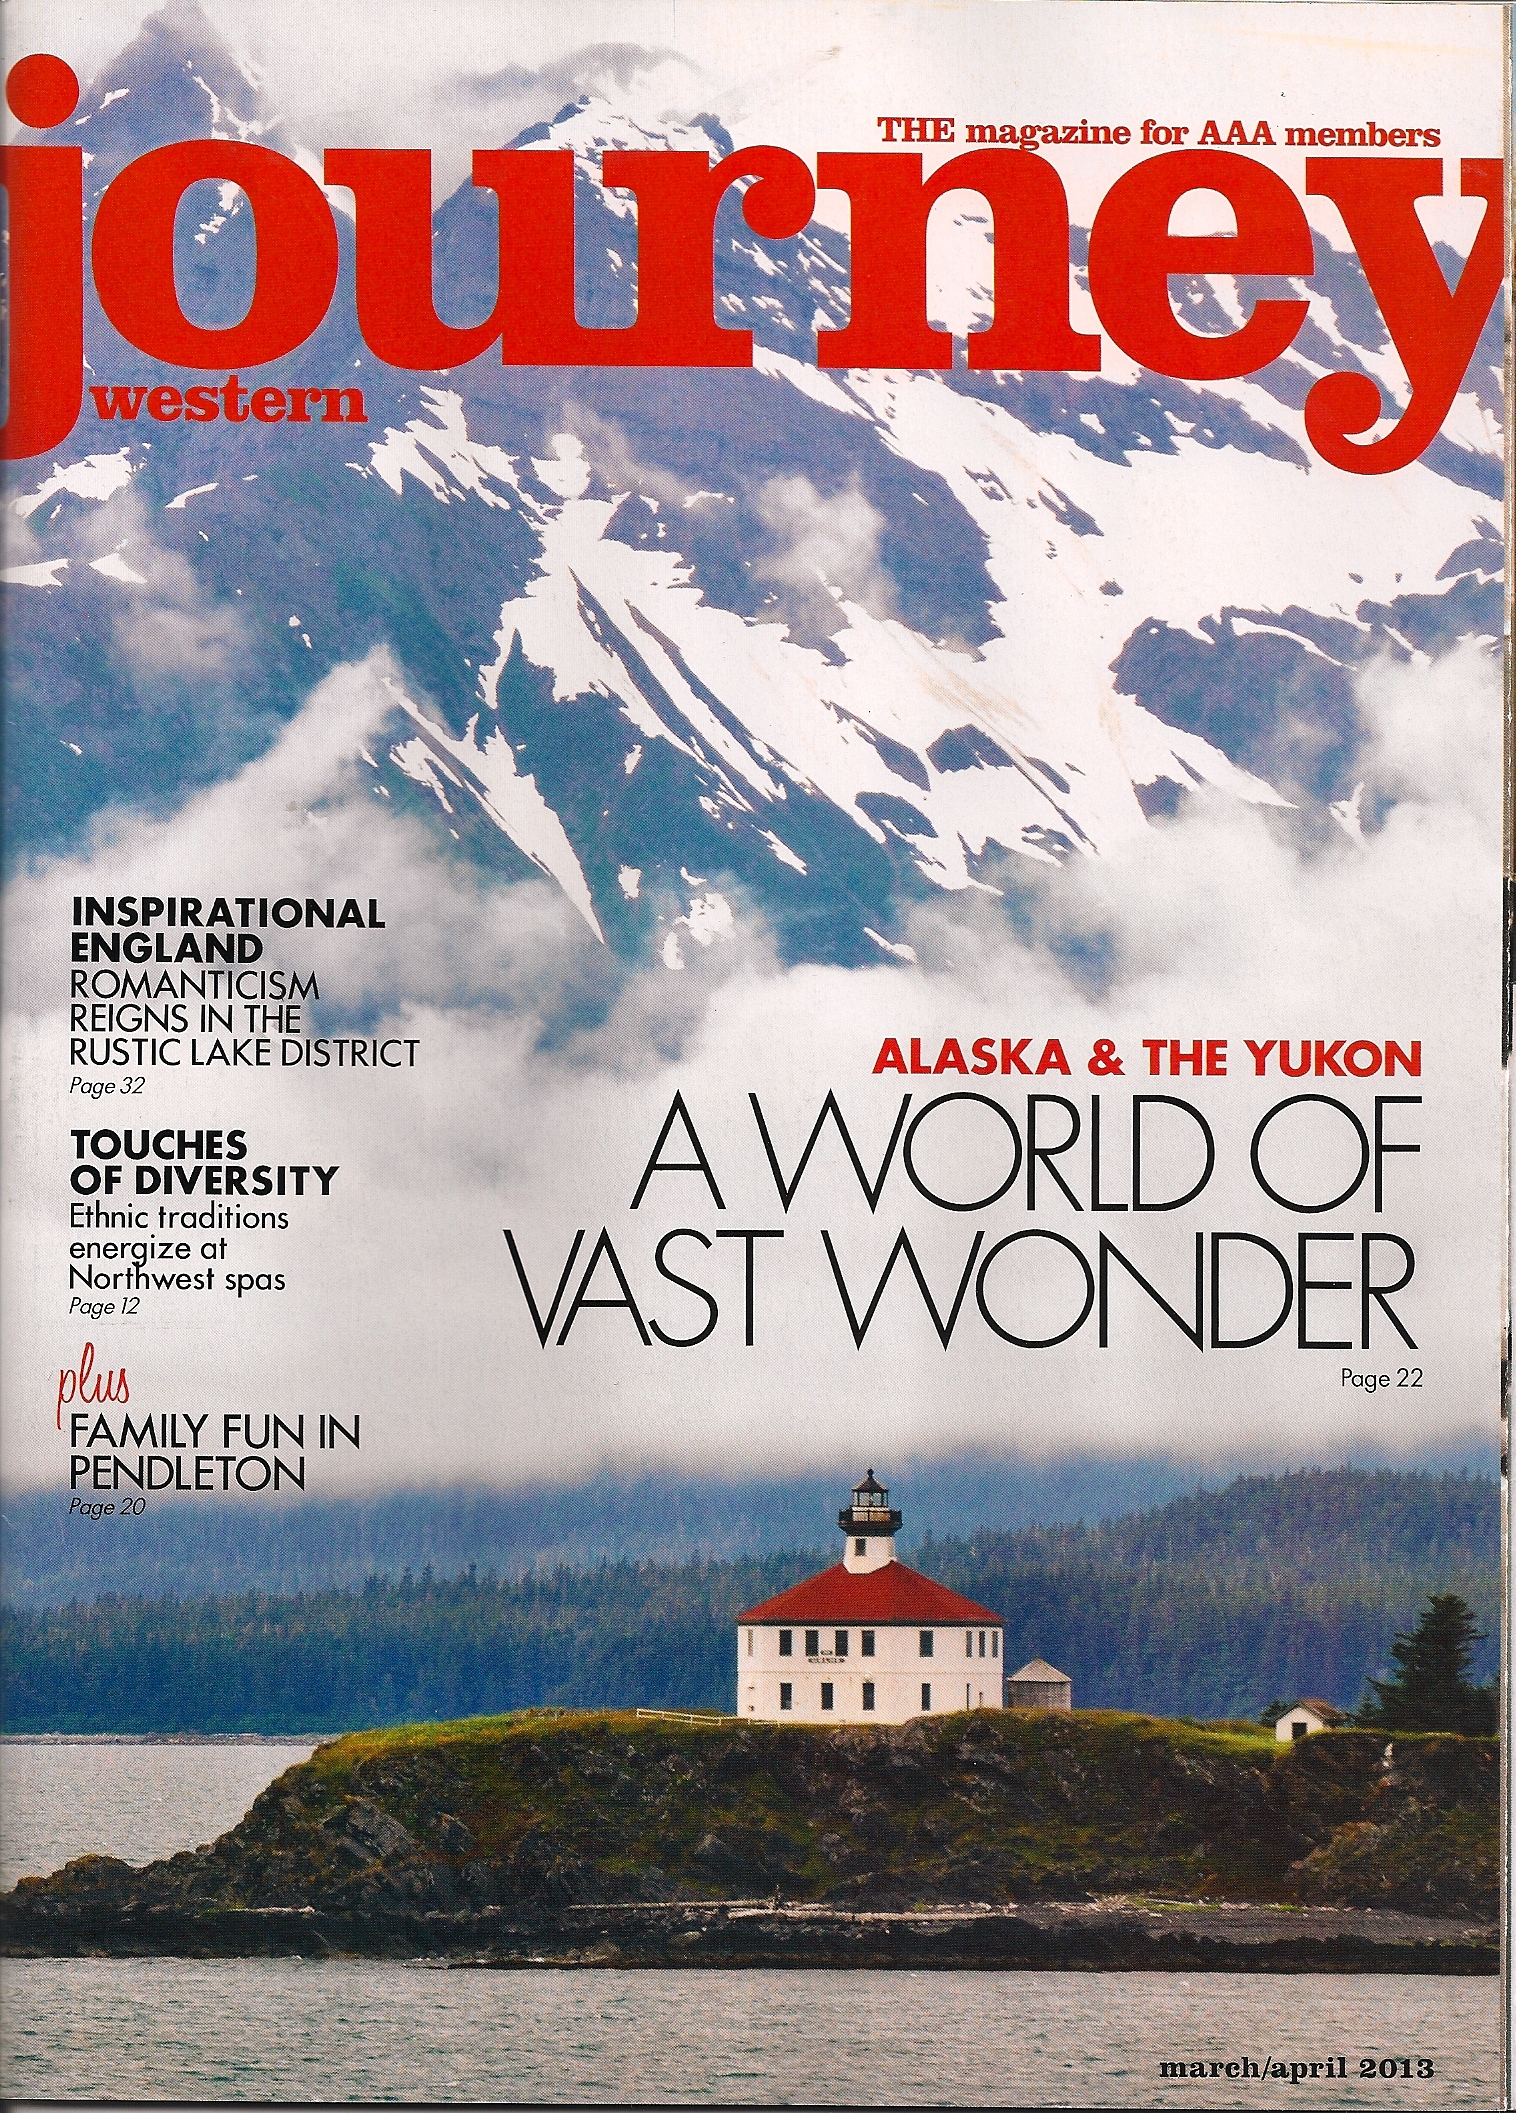 Journey Magazine (USA) April 2013 cover photo and article